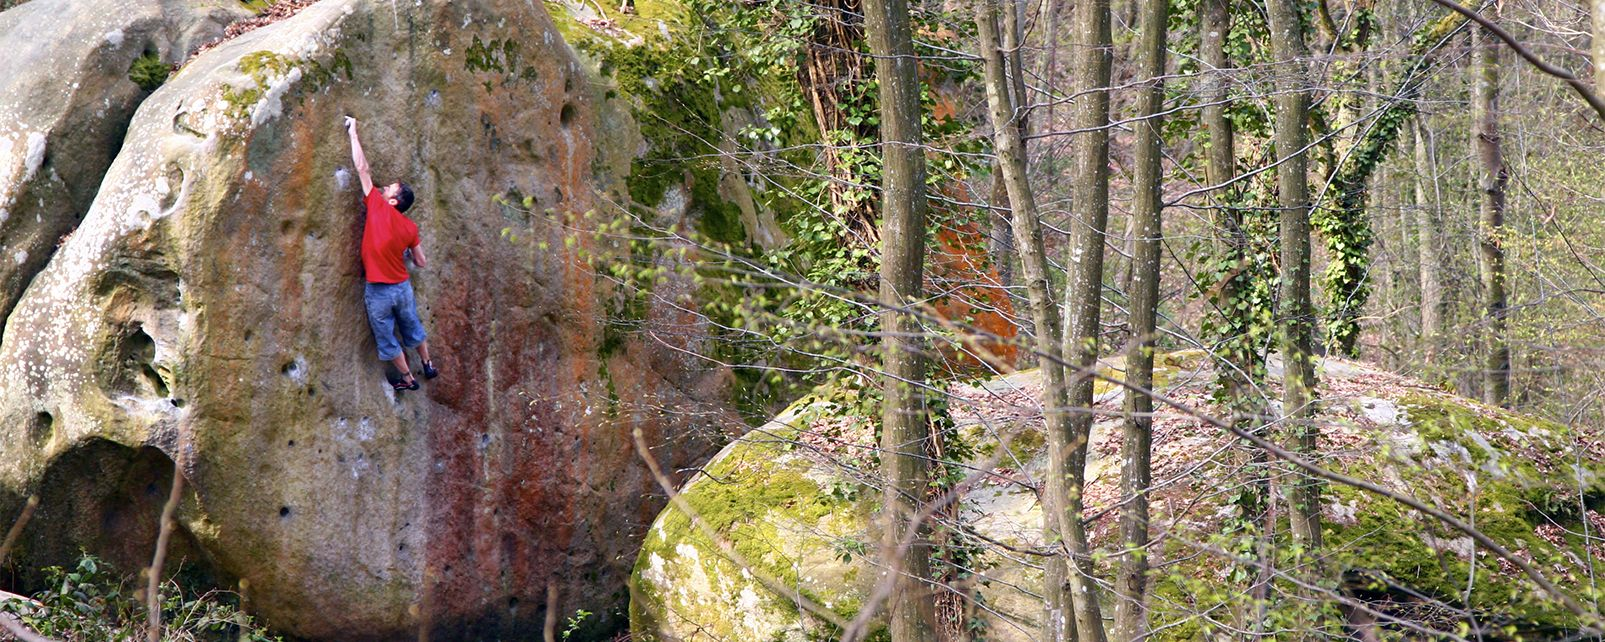 L Escalade En For 234 T De Fontainebleau Ile De France France